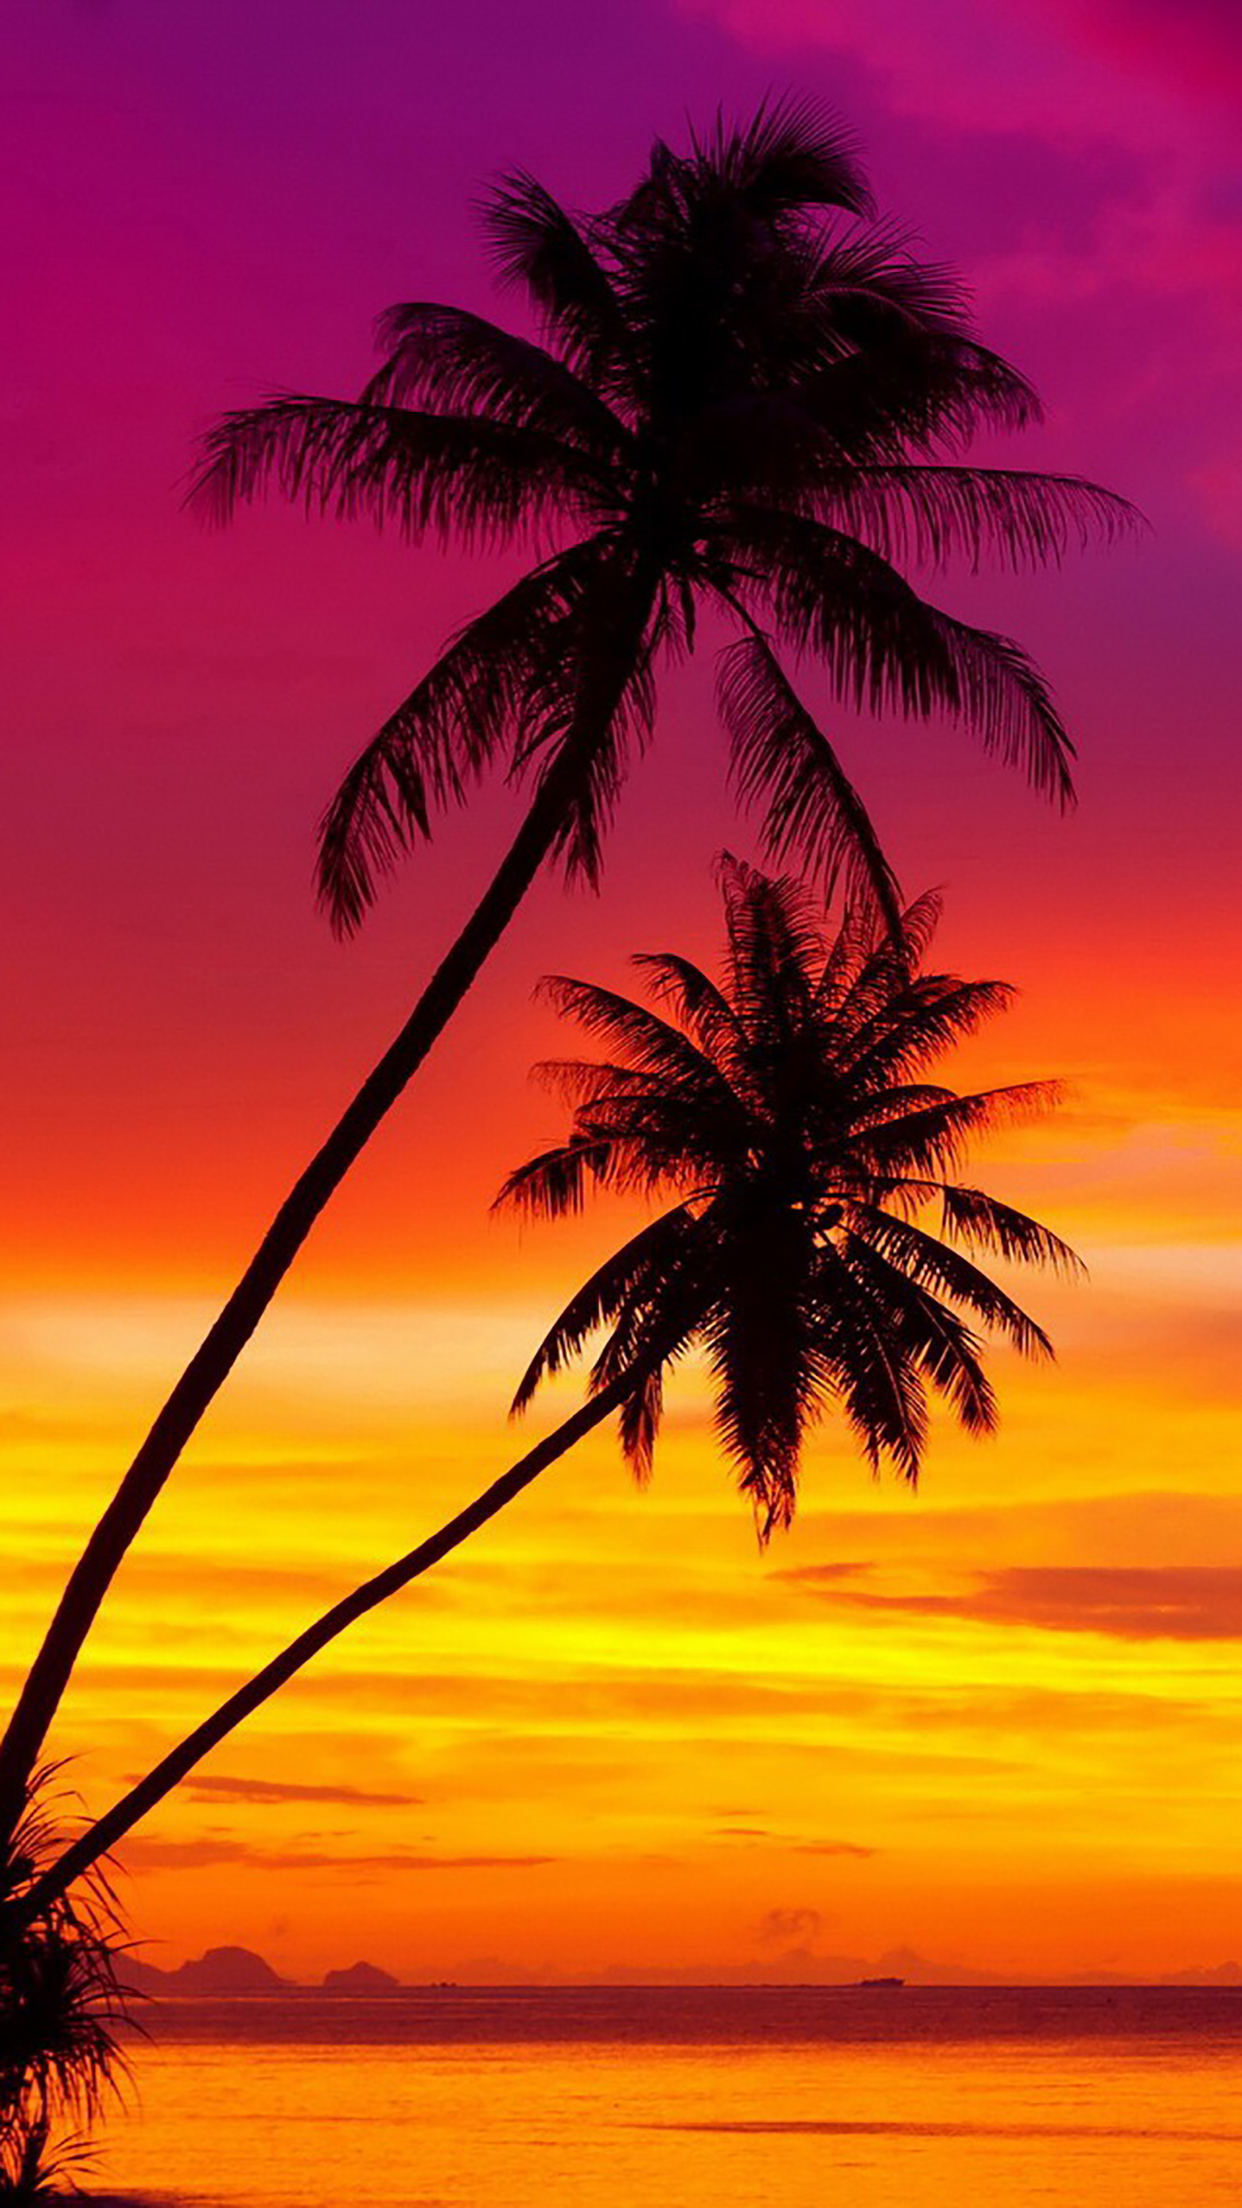 Coconut Palm 3 3Wallpapers iPhone Parallax Coconut Palm : 3